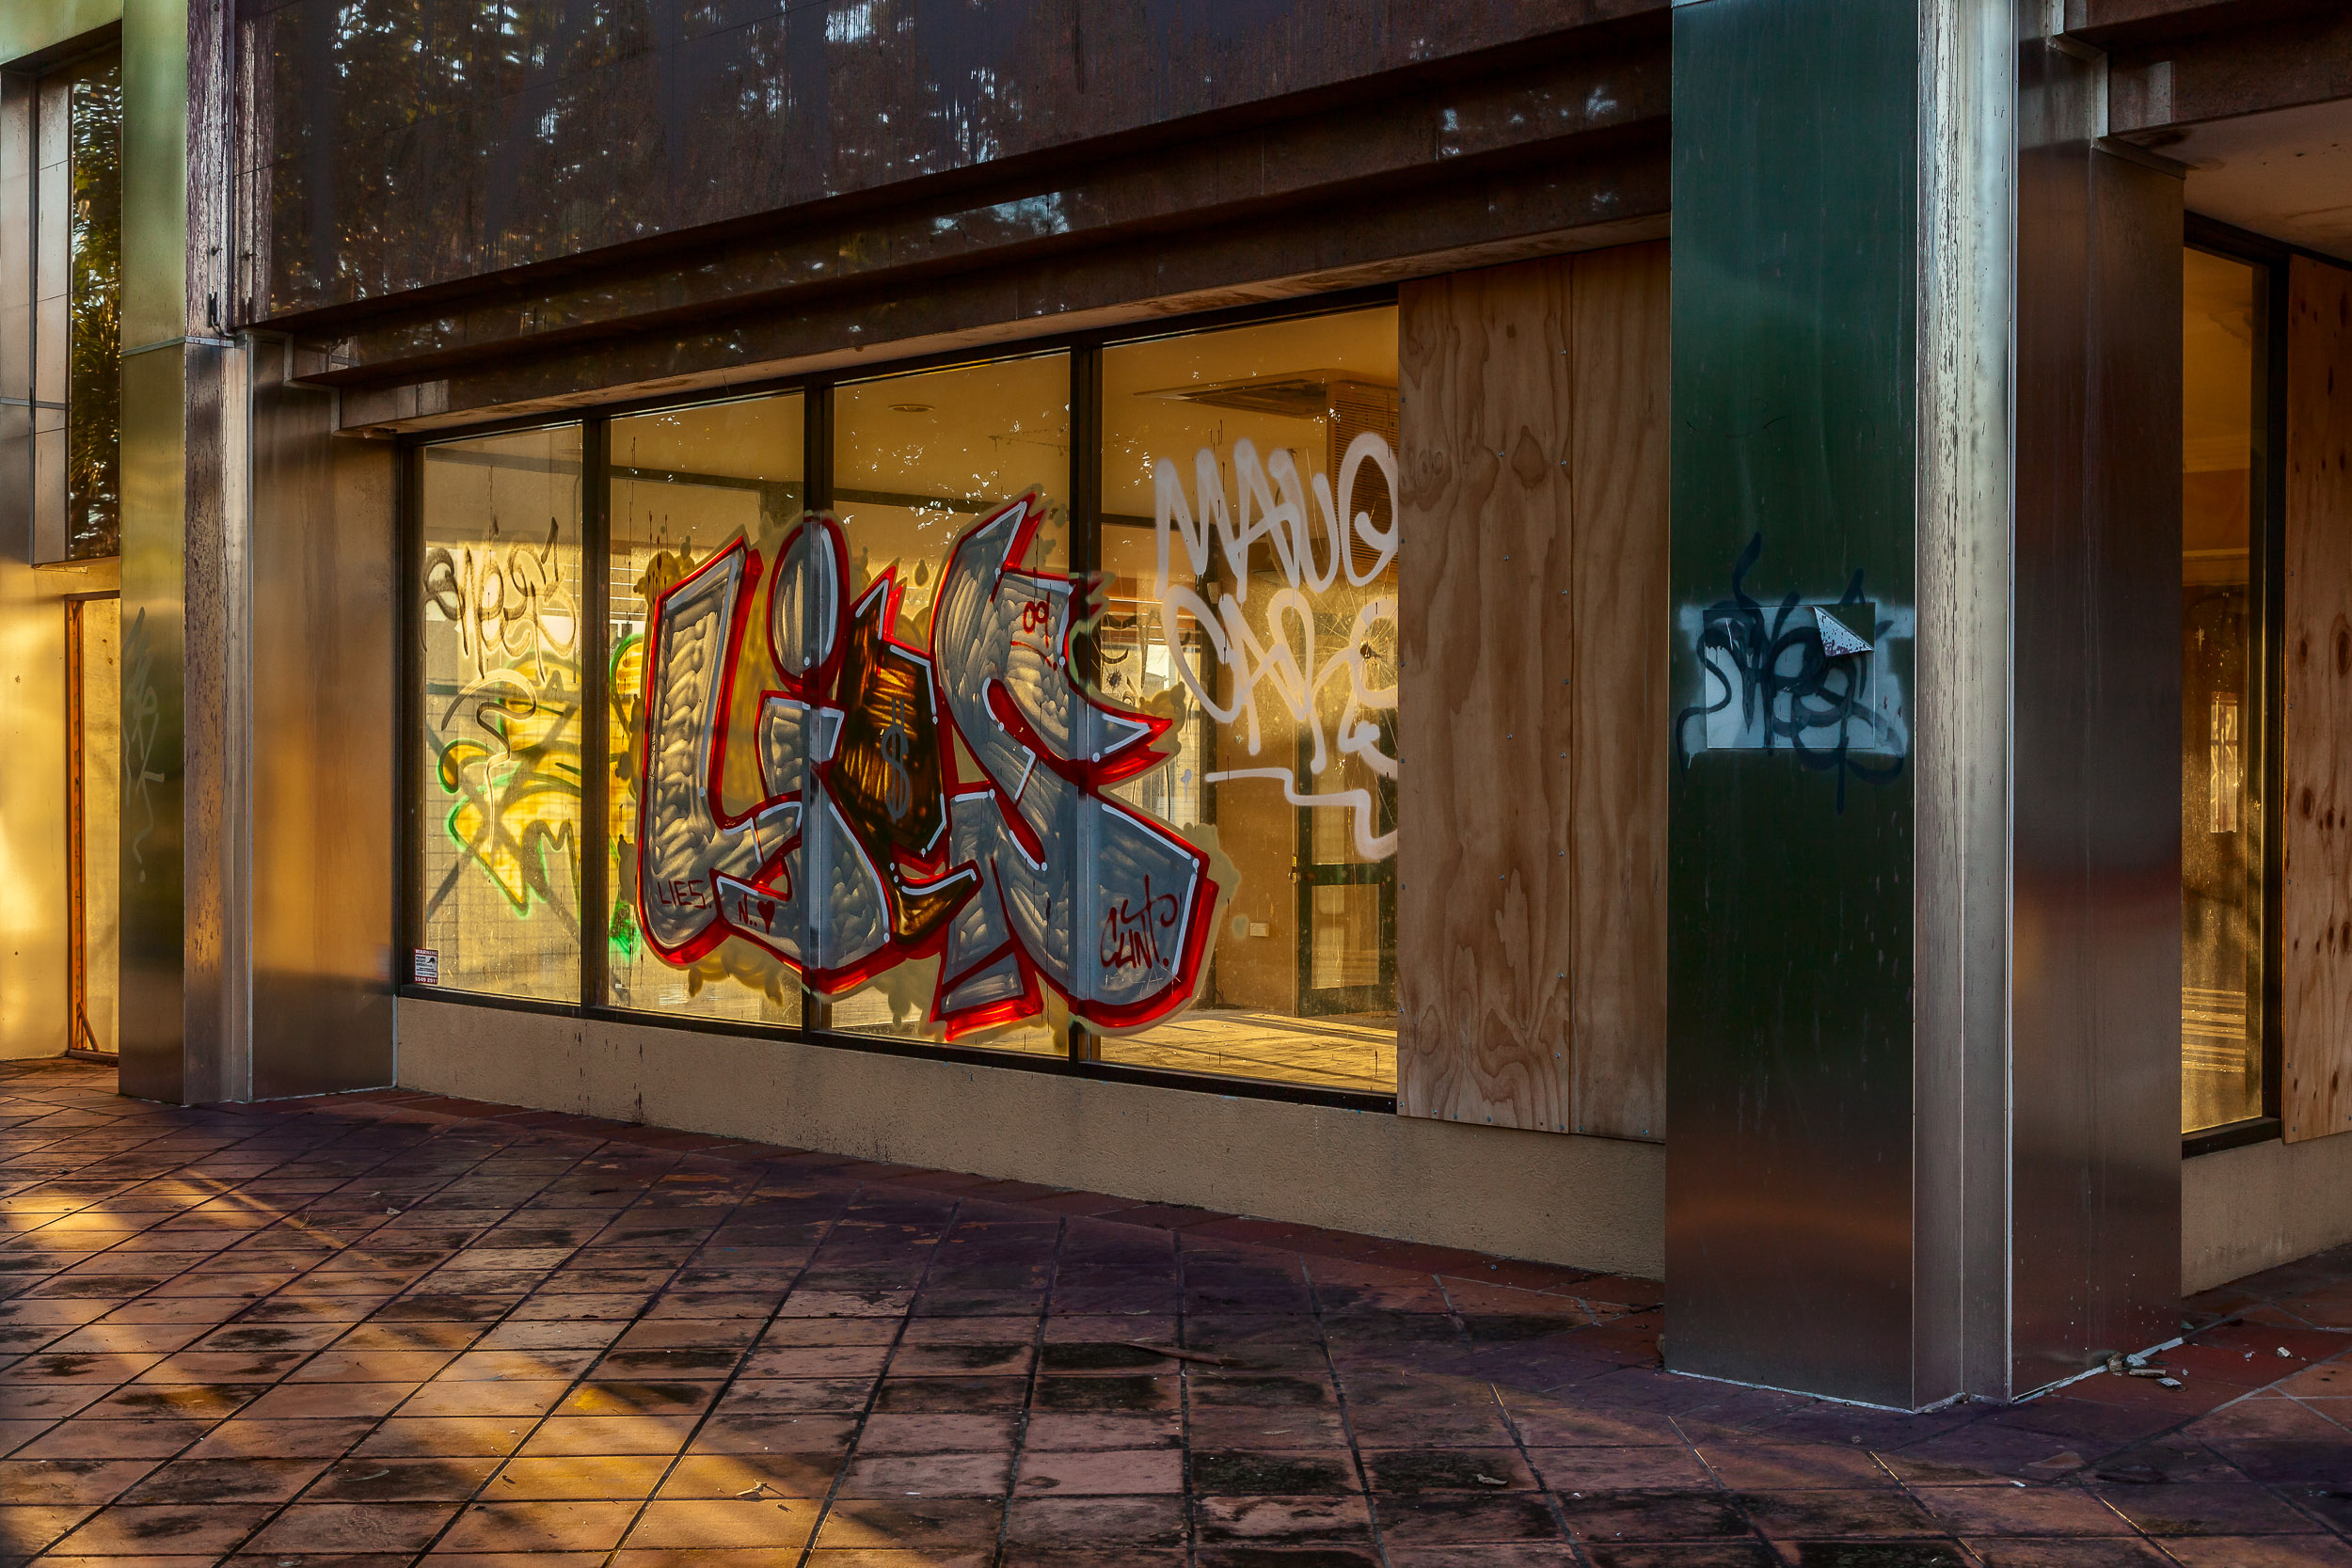 A  vacant store  with a store front that's been  tagged by vandals  at sunset on the  Gold Coast, Australia .